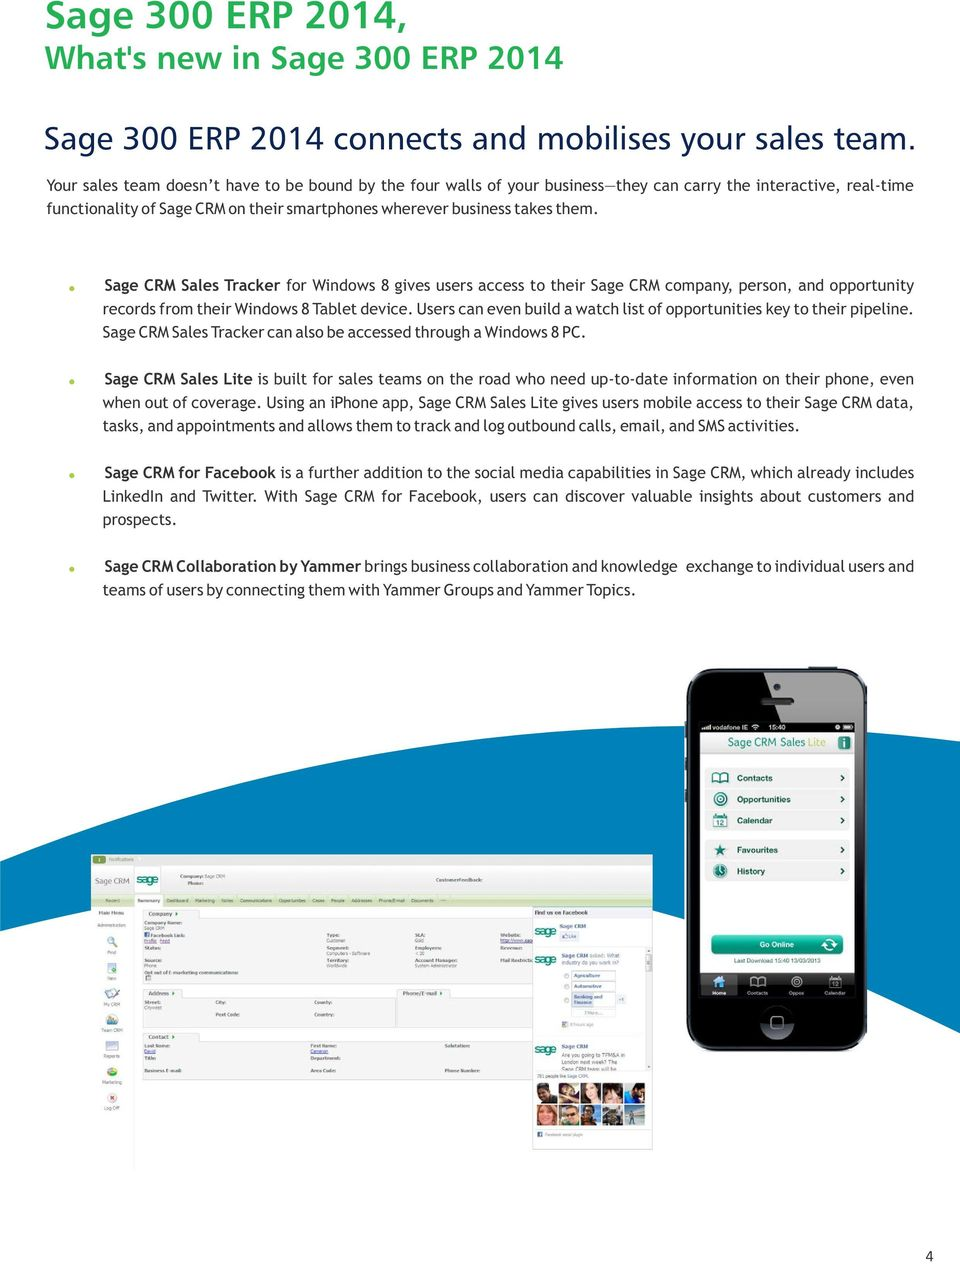 ! Sage CRM Sales Tracker for Windows 8 gives users access to their Sage CRM company, person, and opportunity records from their Windows 8 Tablet device.